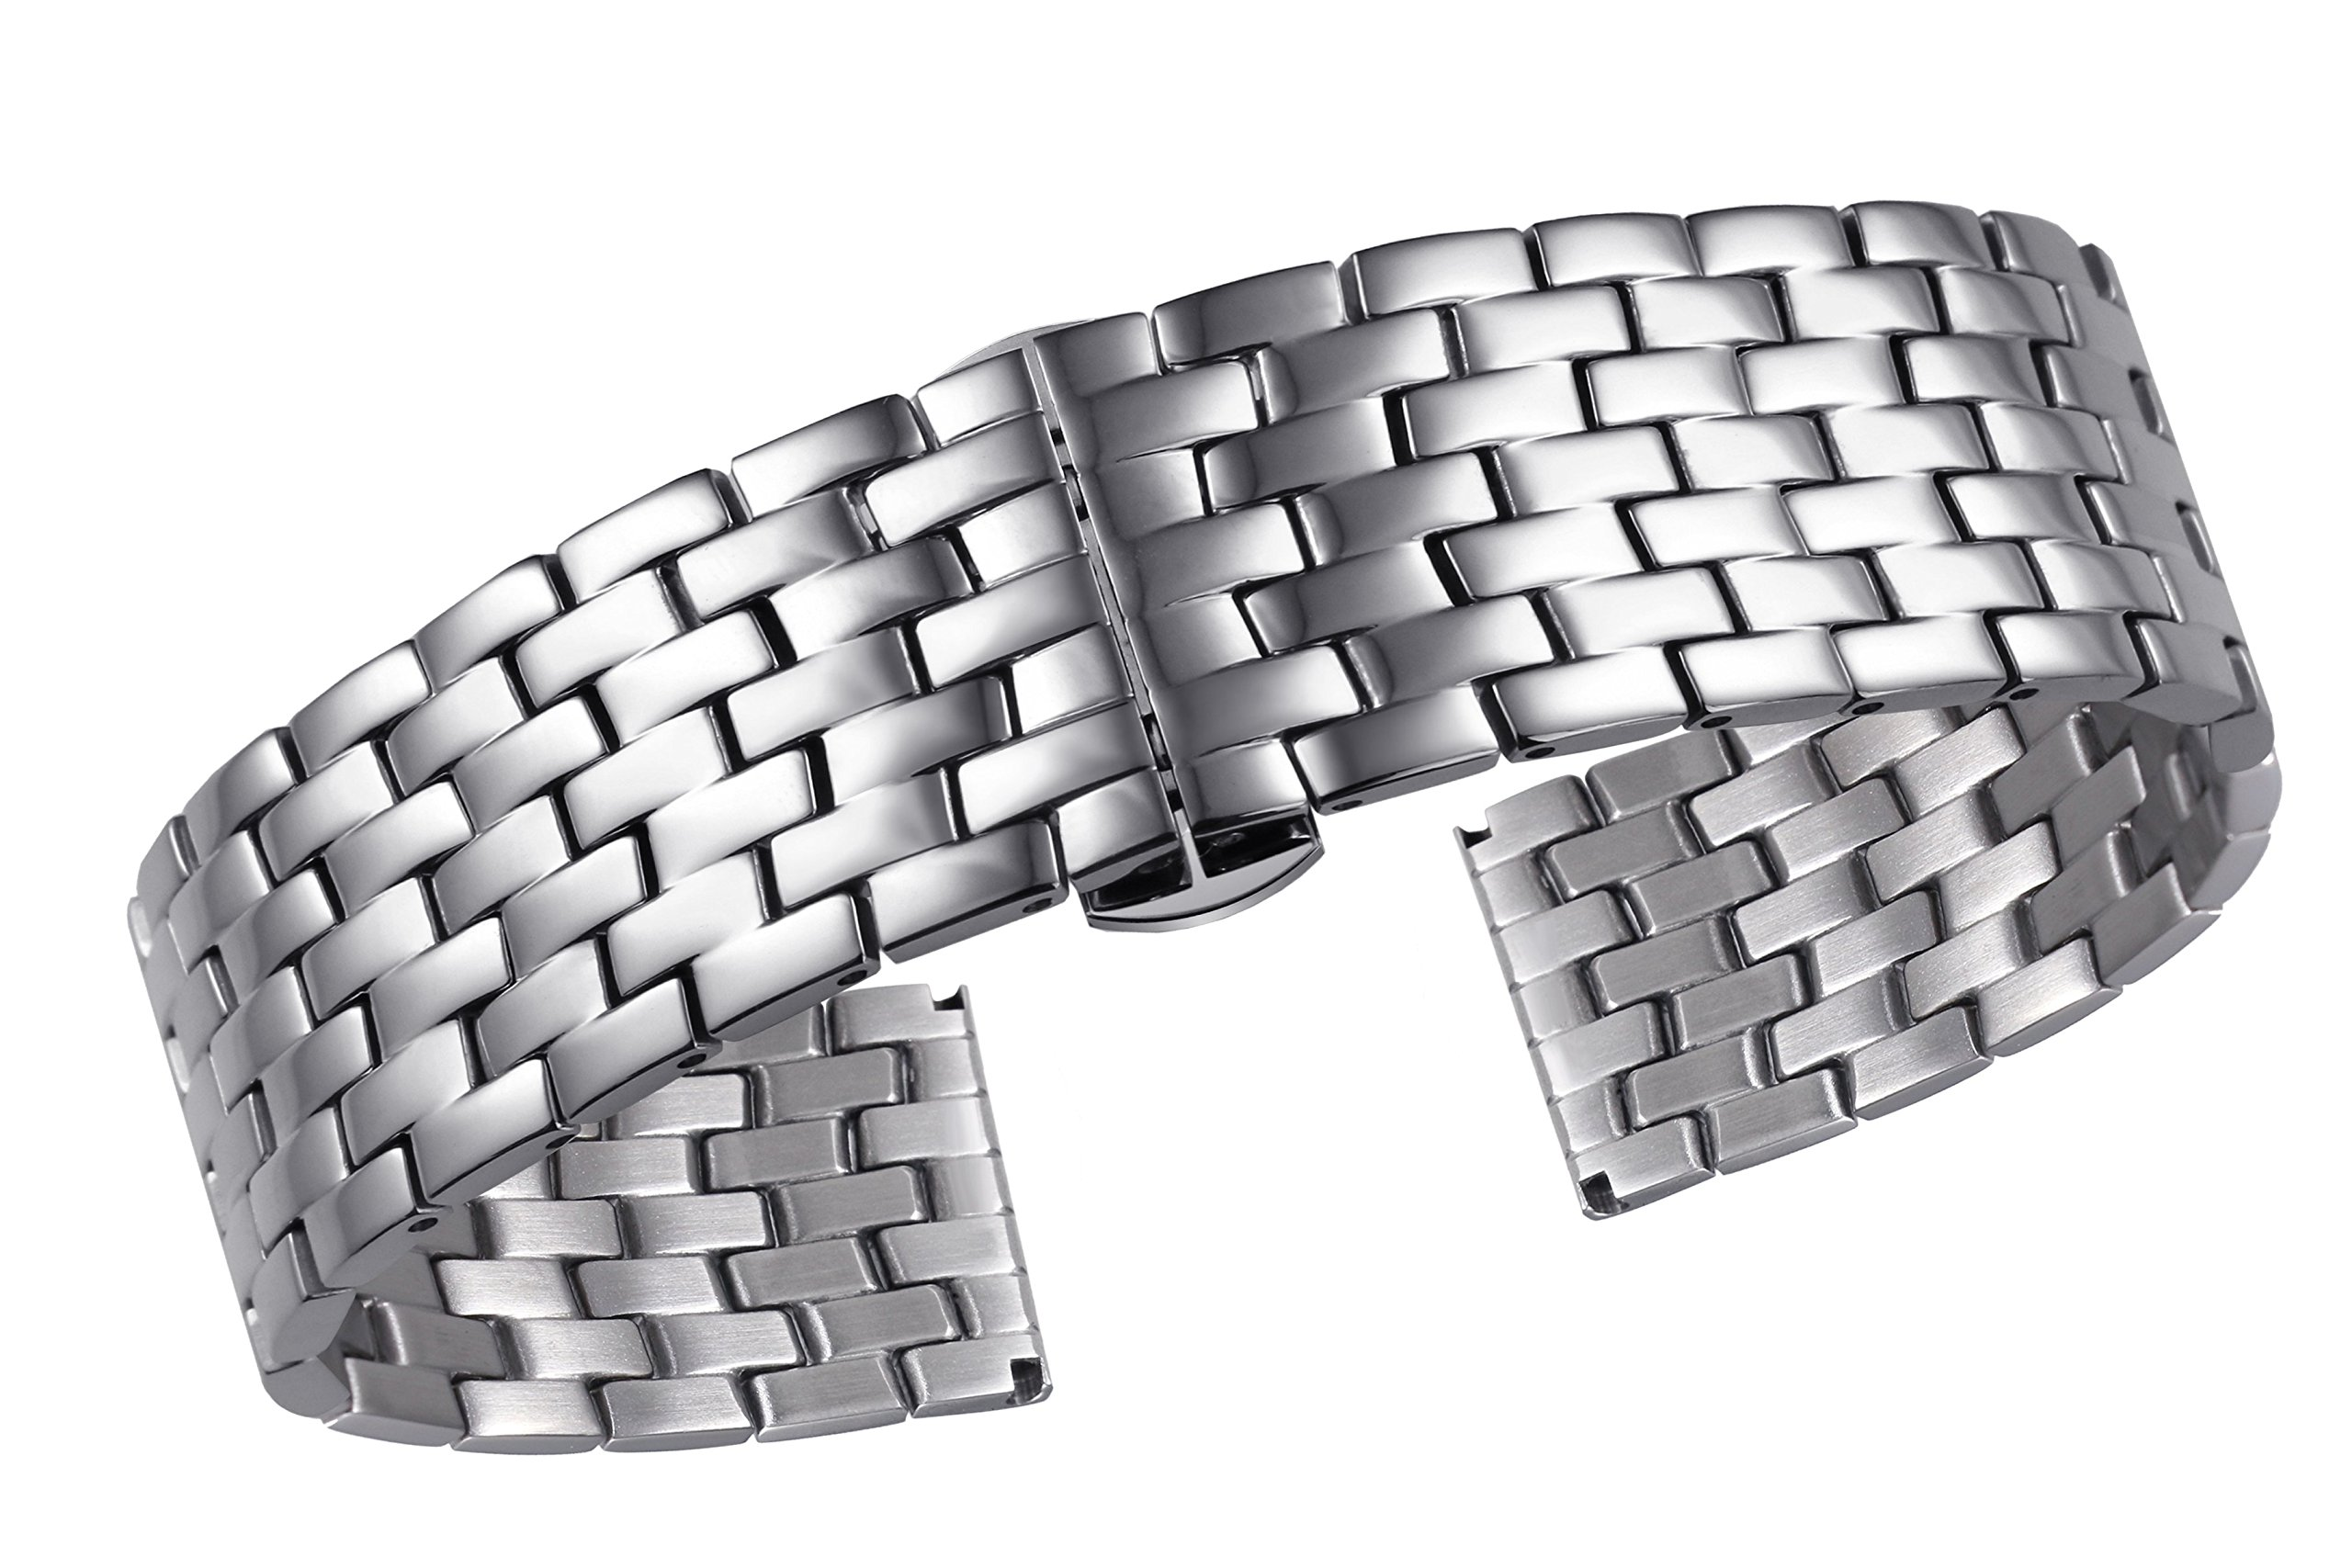 22mm Fantastic Silver Replacement Watch Bands Metal for Watches High-End Stainless Steel Watch Straps by AUTULET